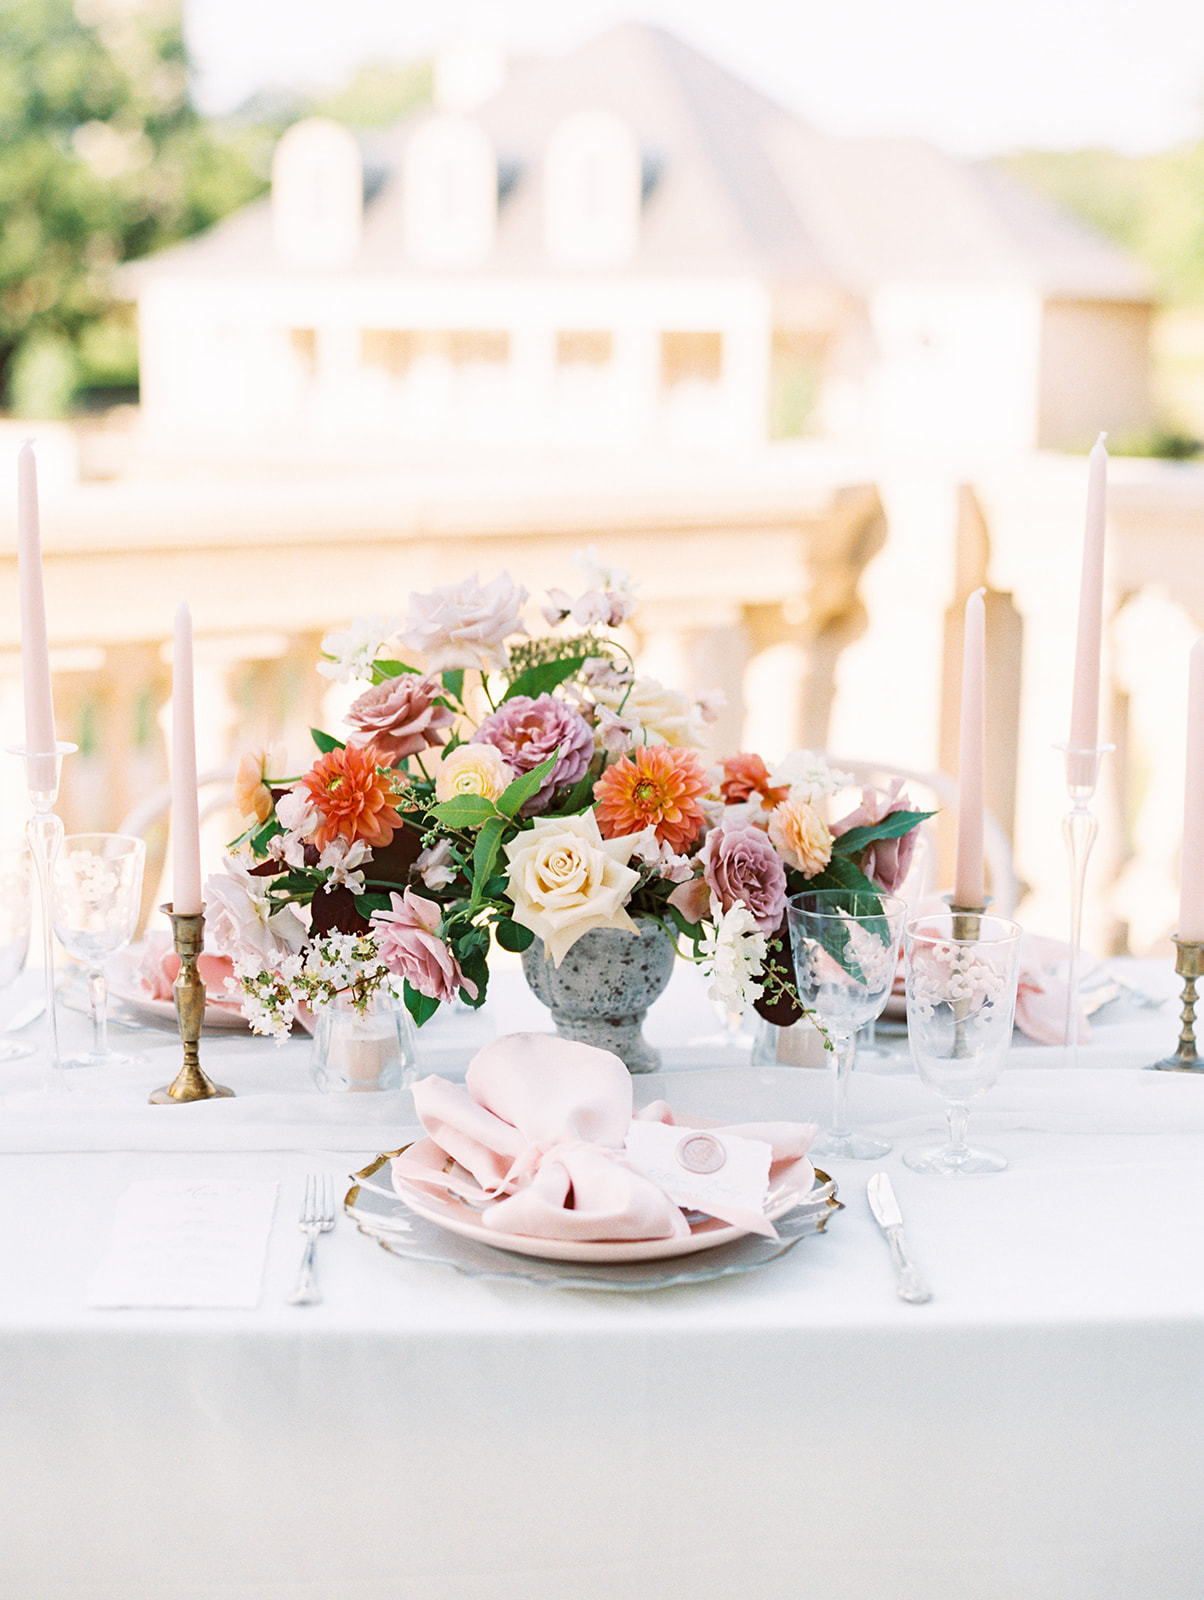 Wedding centerpiece: Whimsical garden elegance styled shoot featured on Alexa Kay Events